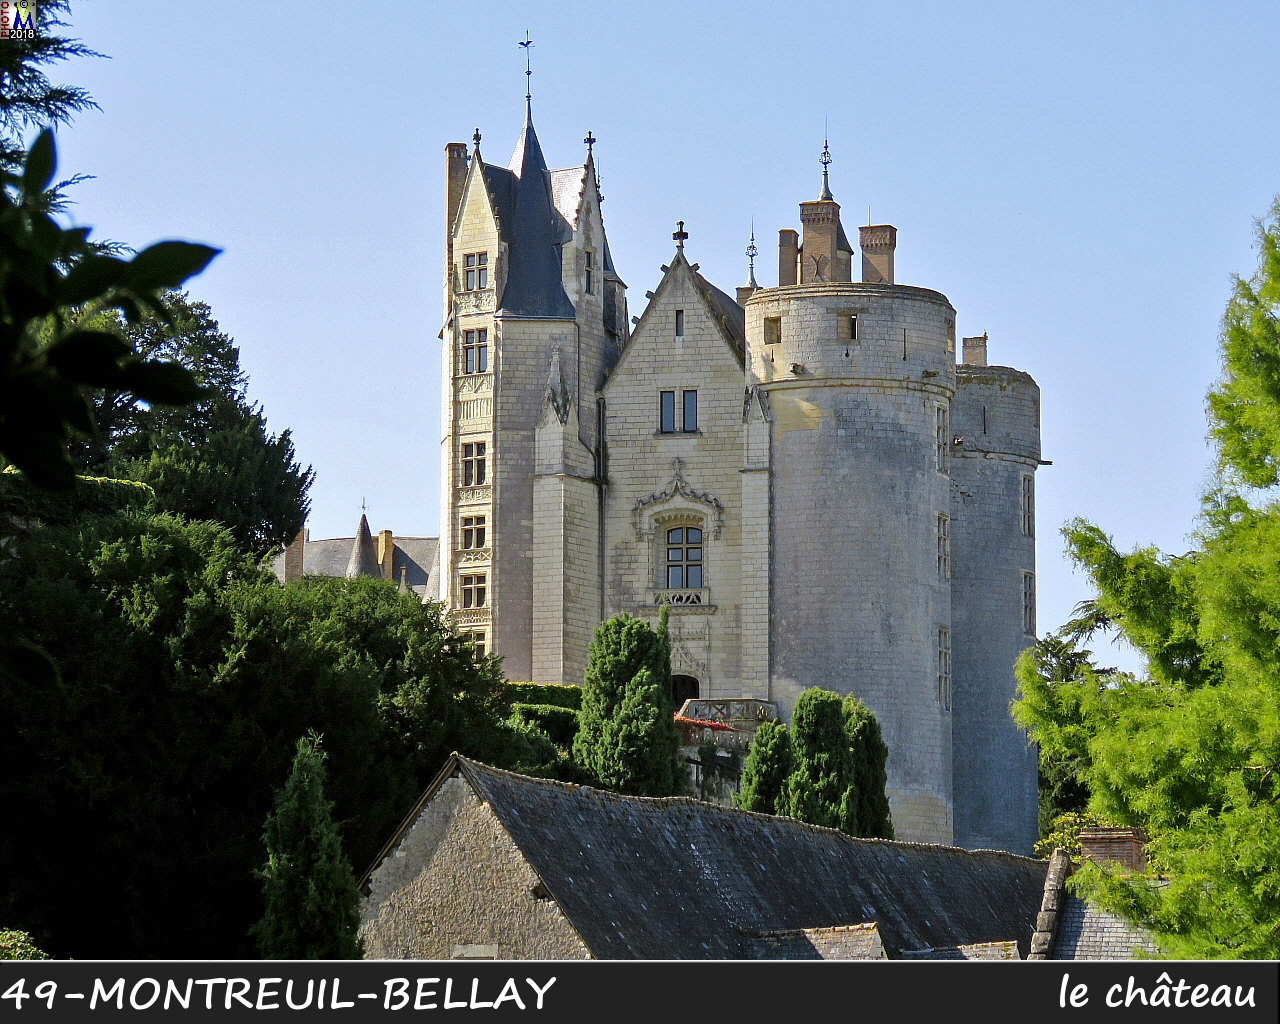 49MONTREUIL-BELLAY_chateau_1008.jpg